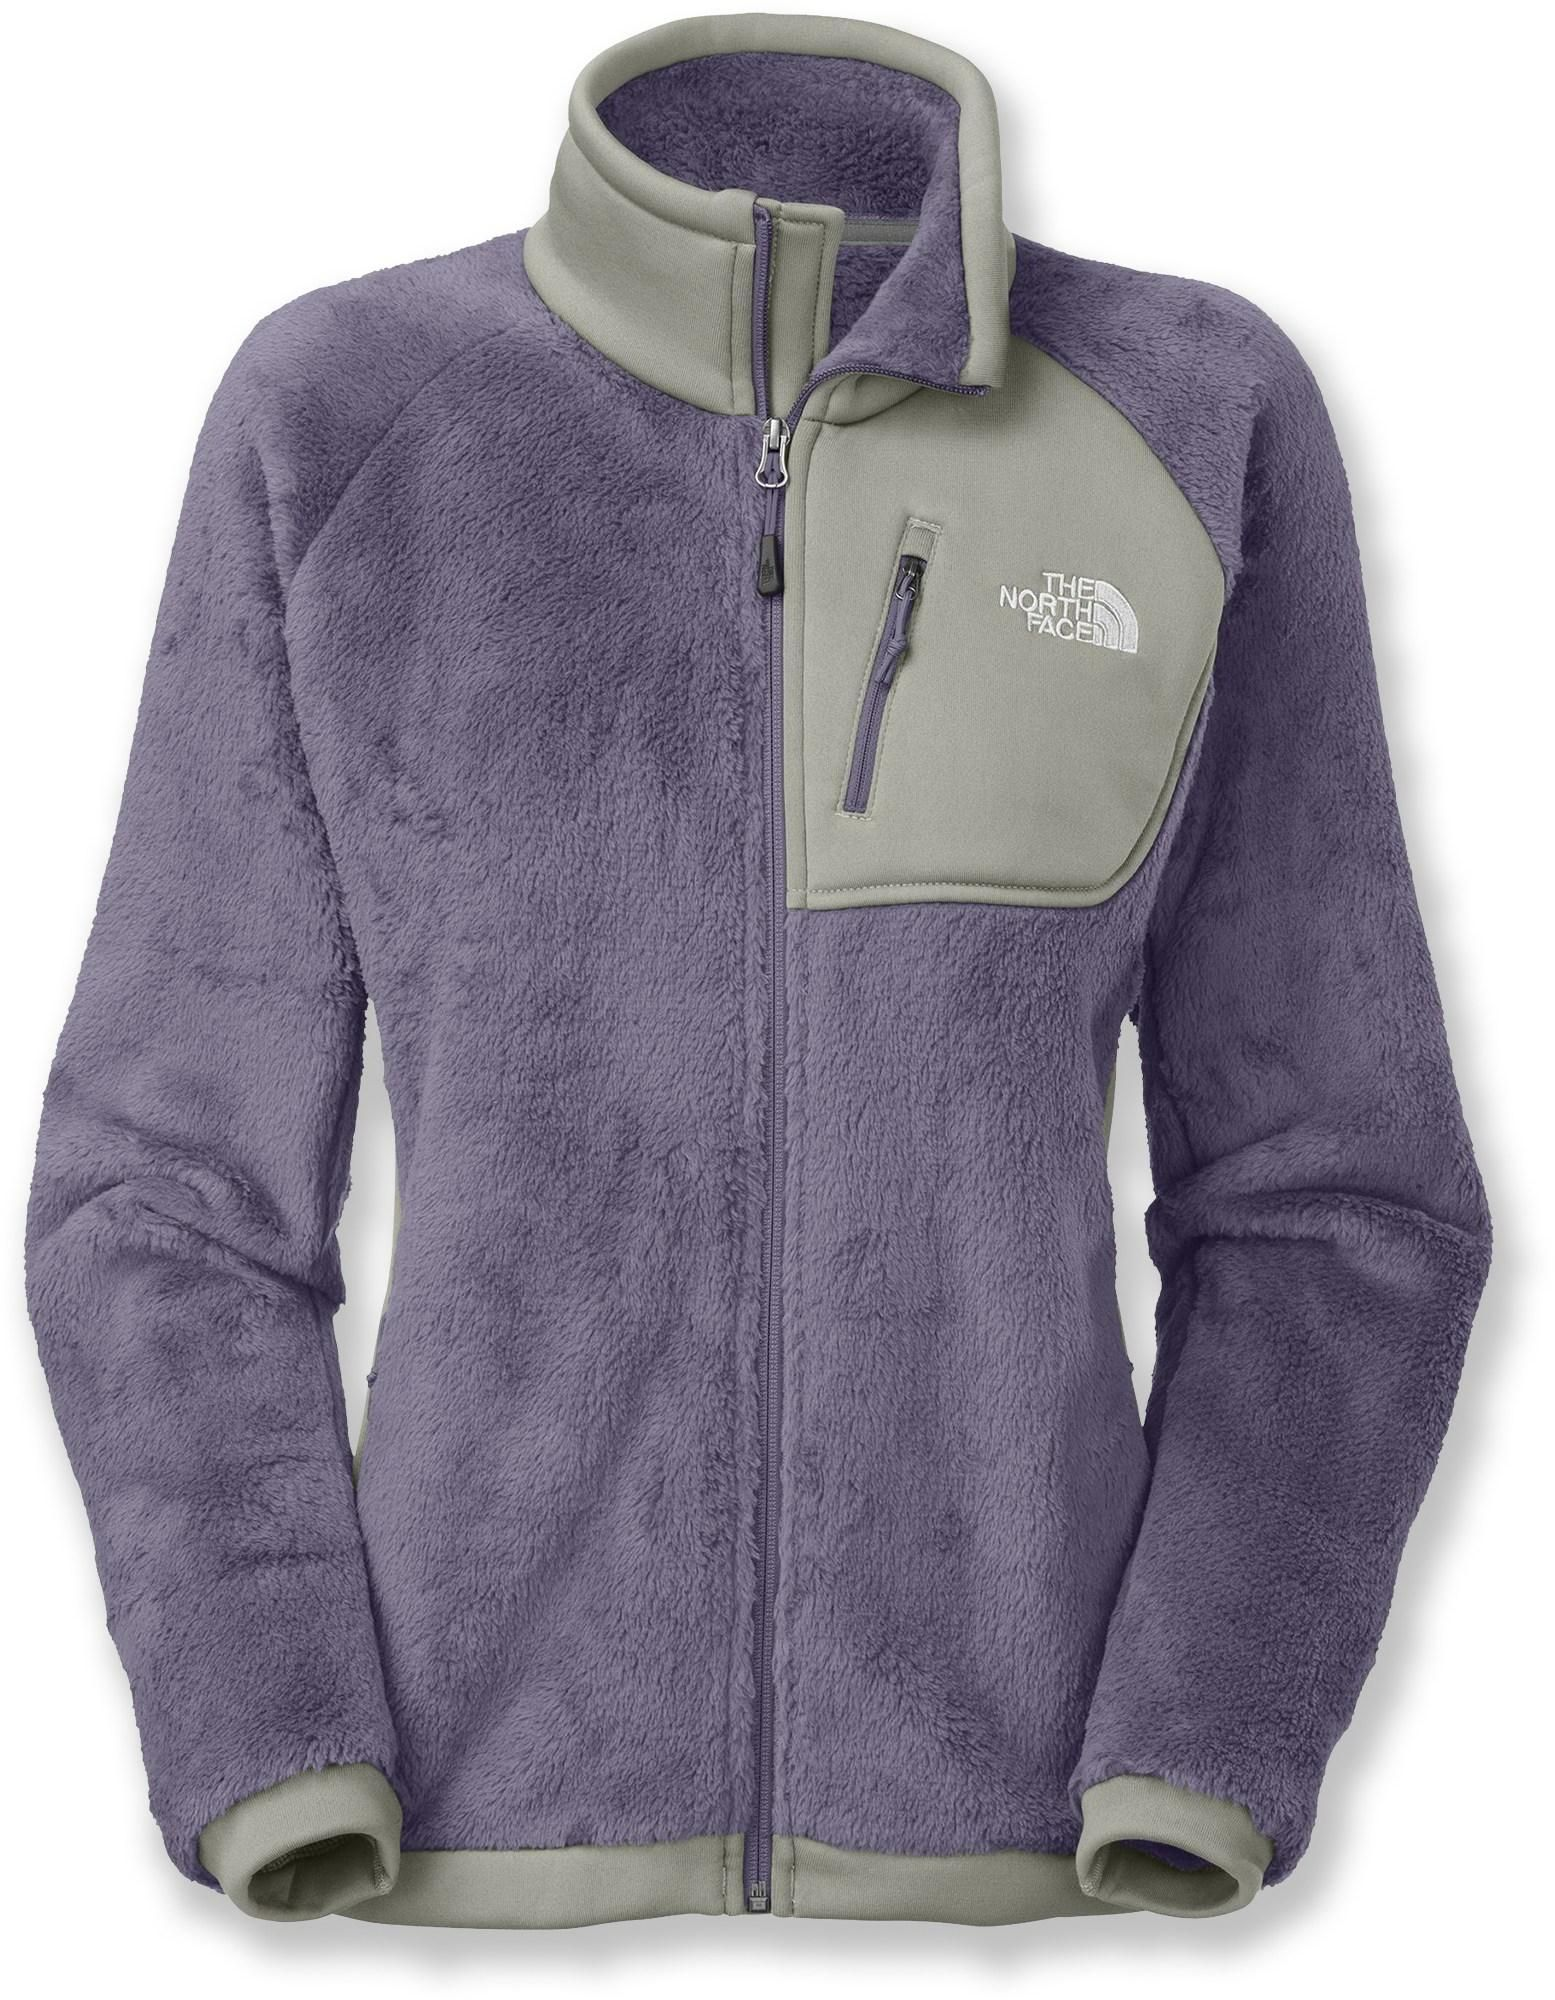 the north face grizzly jacket for women combines polartec. Black Bedroom Furniture Sets. Home Design Ideas